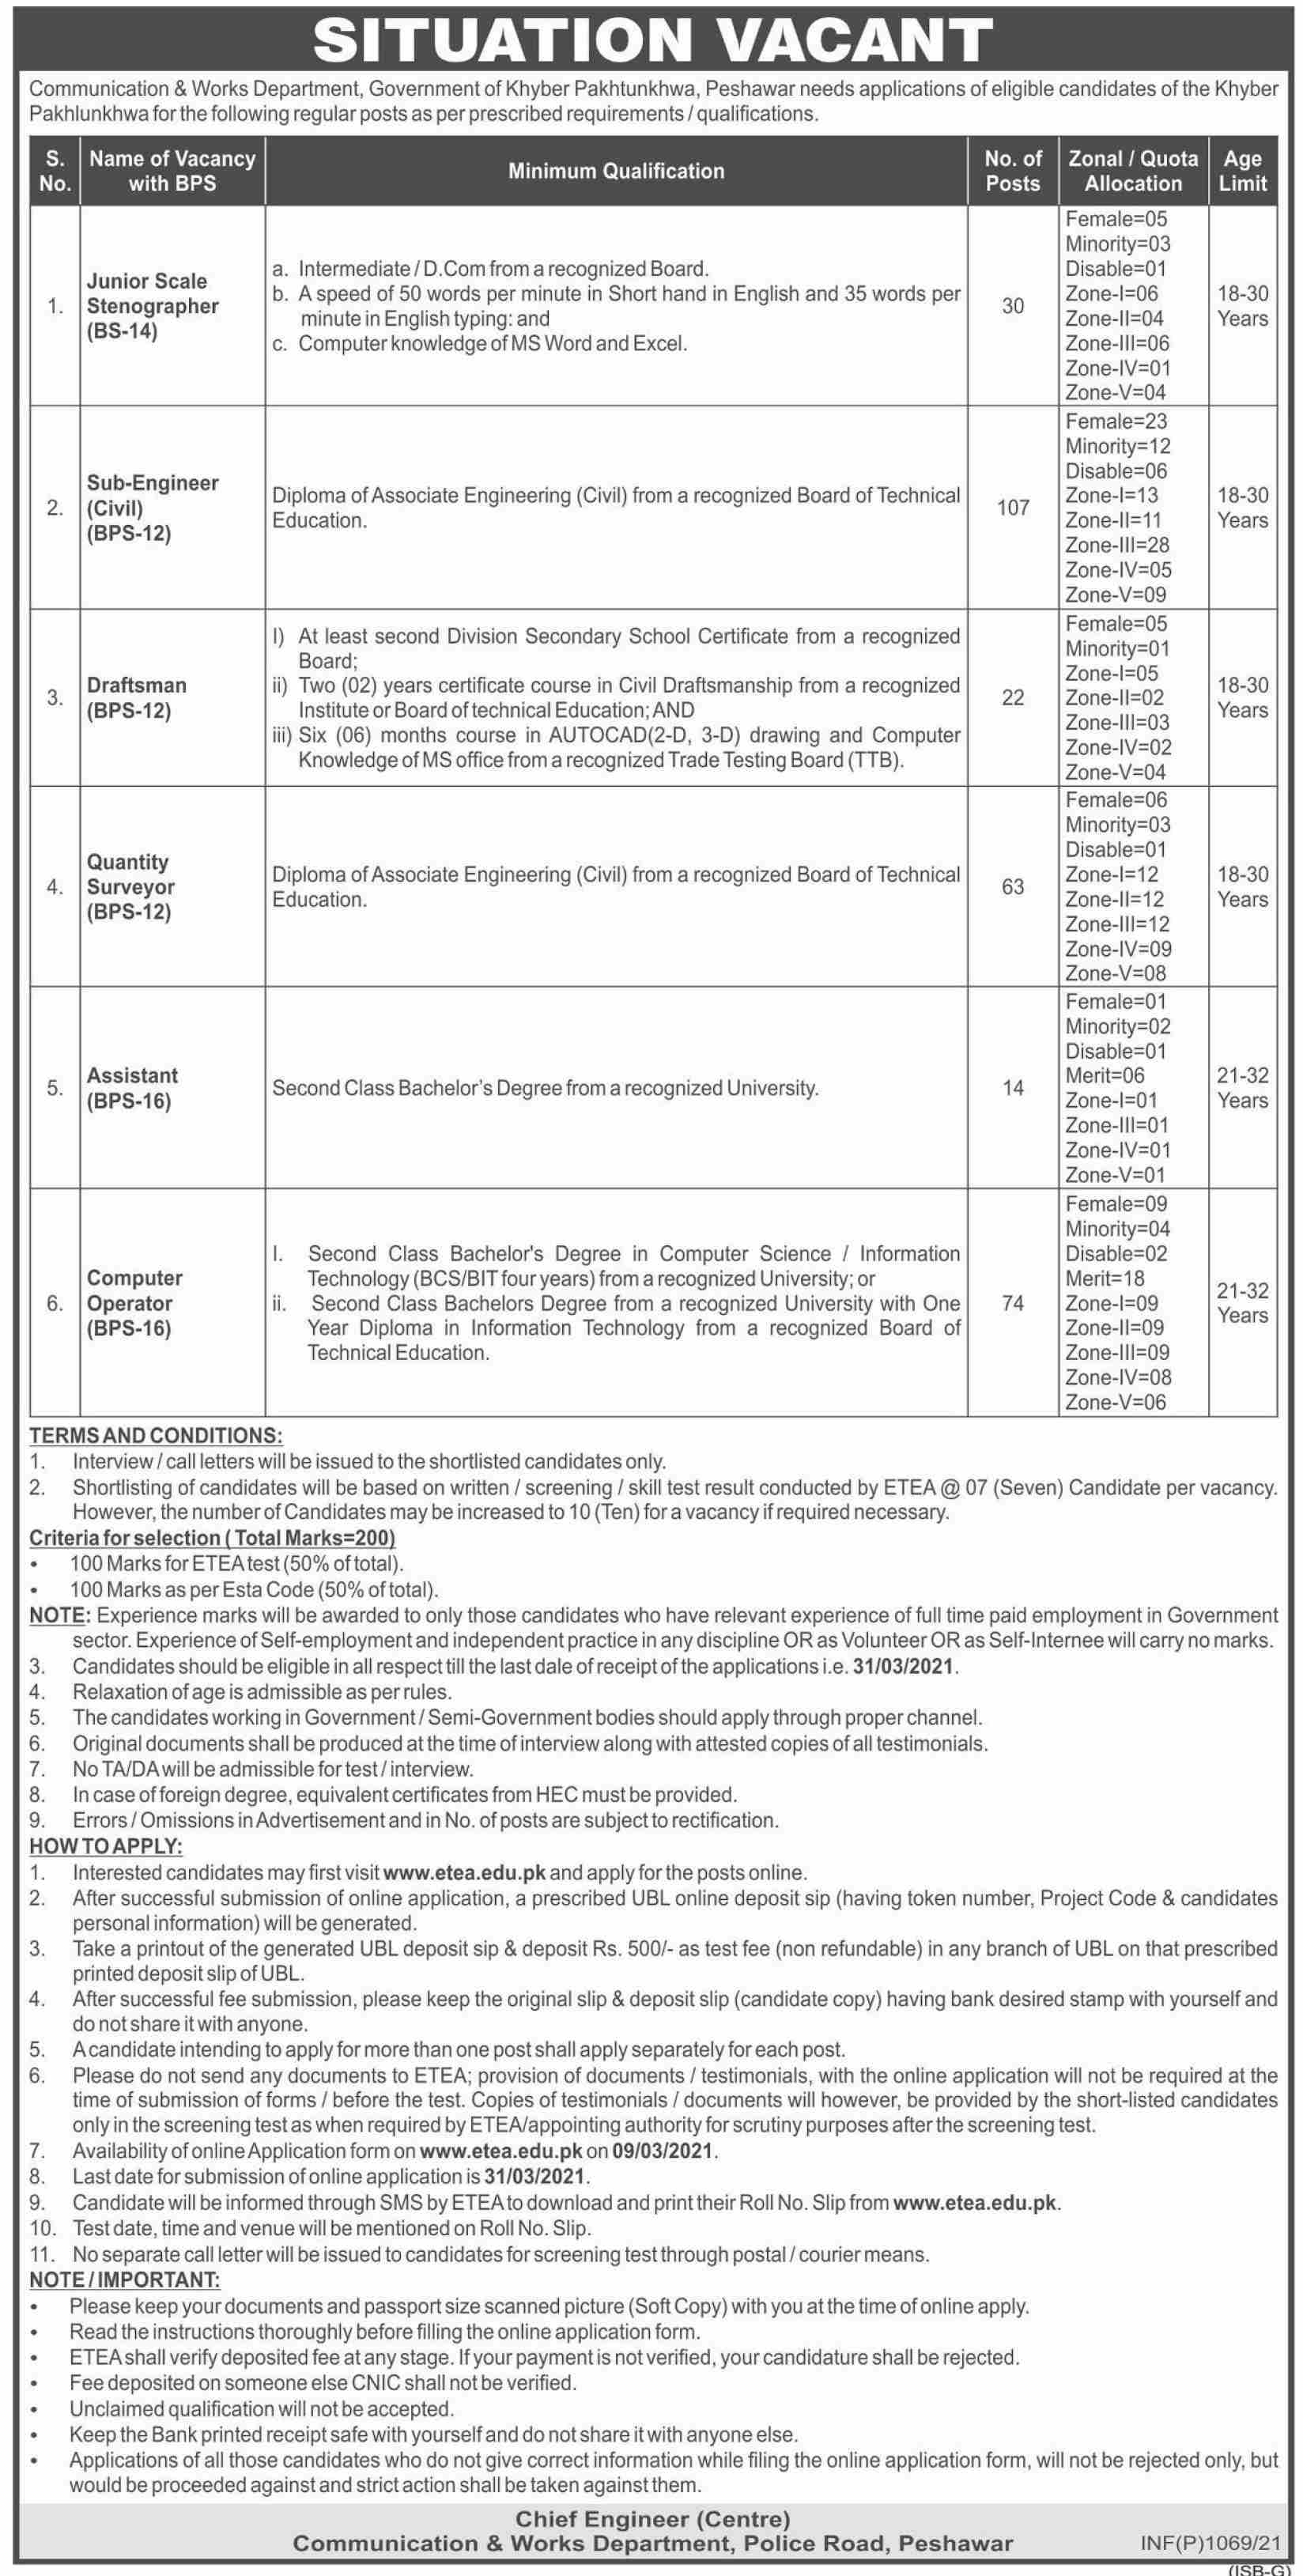 Communication & Works Department jobs newspaper ad for Draftsman in Peshawar on 2021-03-03